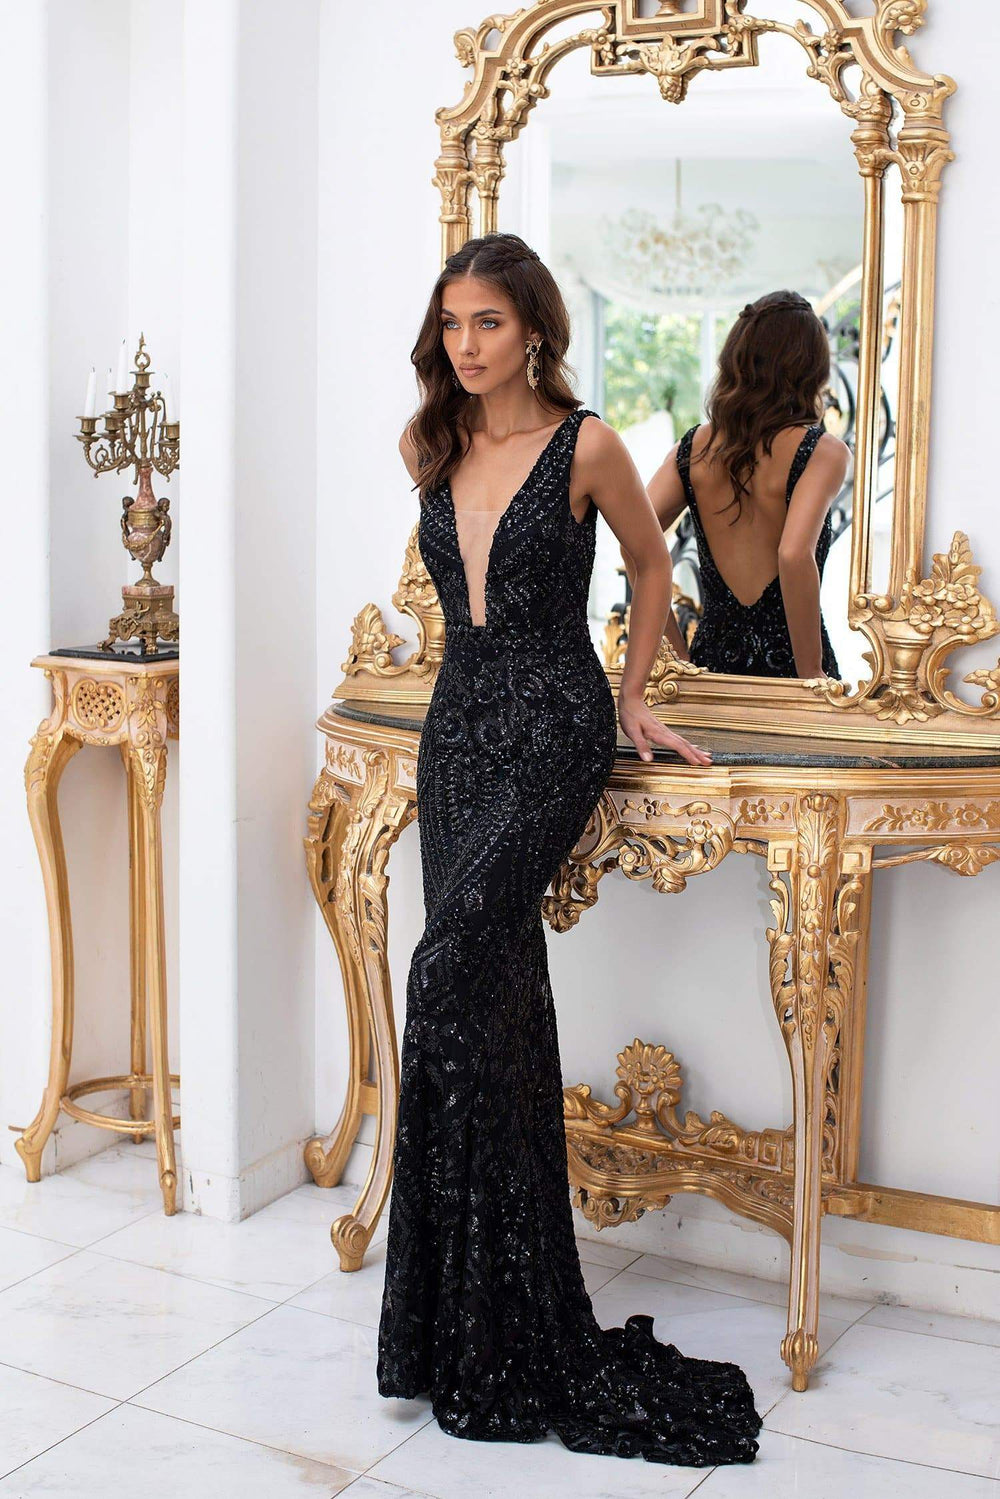 Luriana - Black Sequins Mermaid Gown with Plunge Neck & Low Back